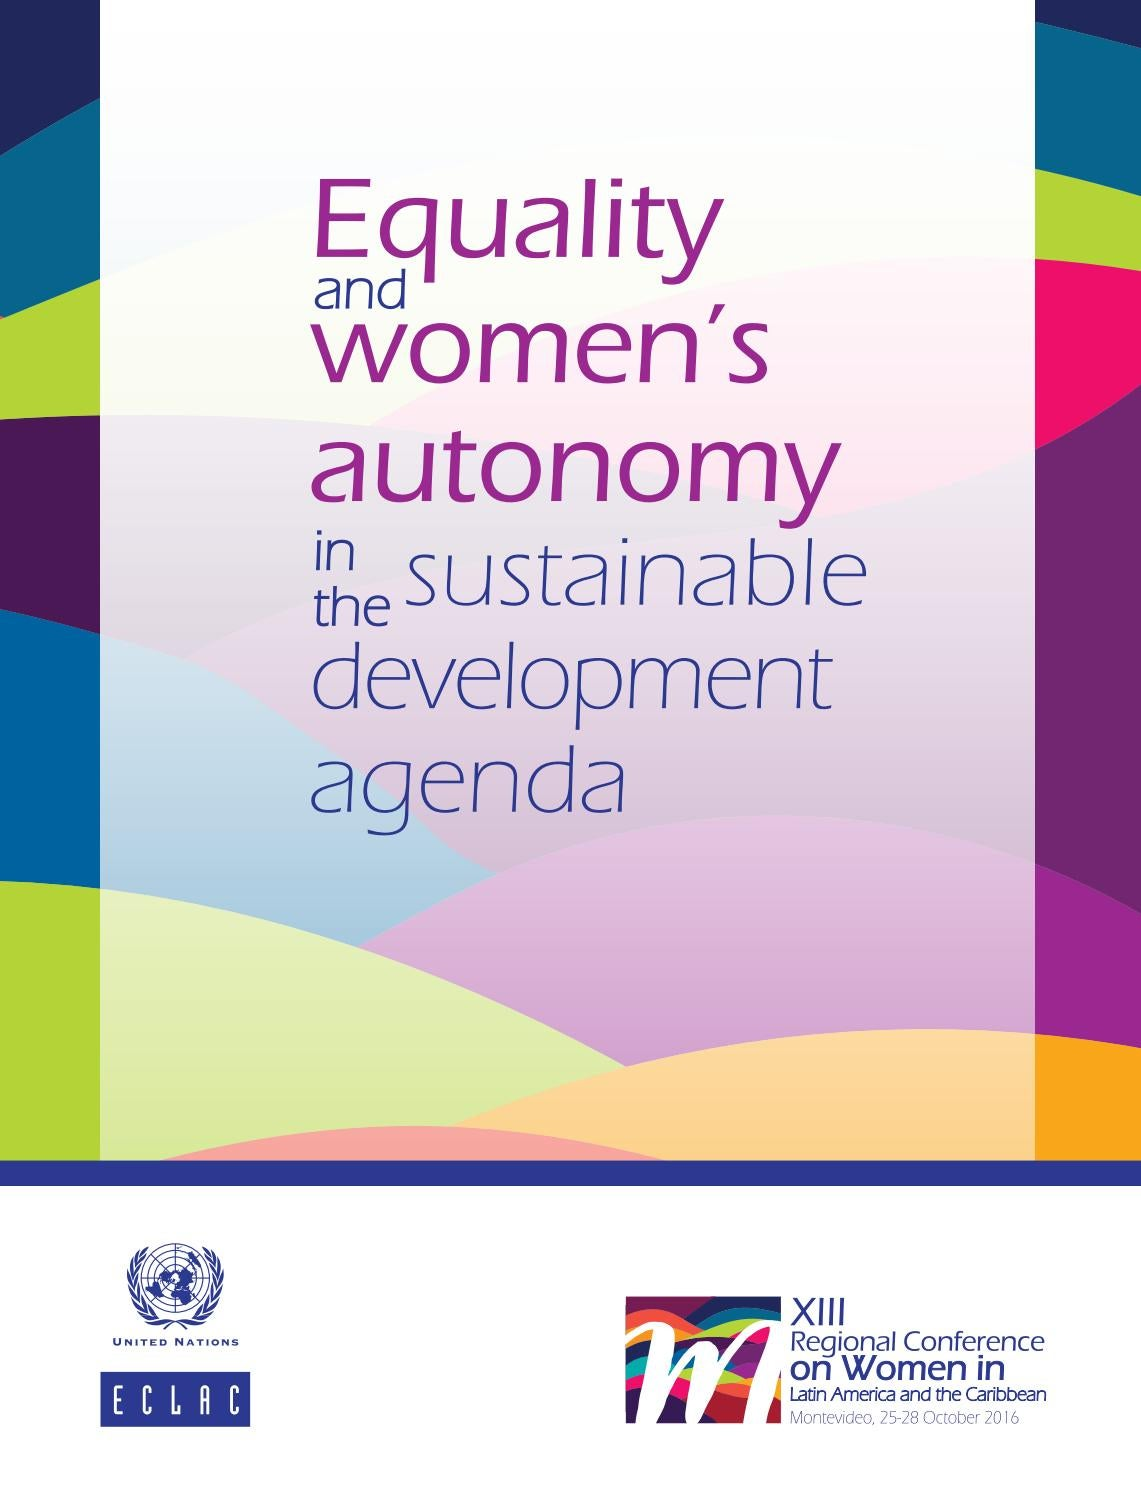 Cash Pooling Y Precios De Transferencia Equality And Women S Autonomy In The Sustainable Development